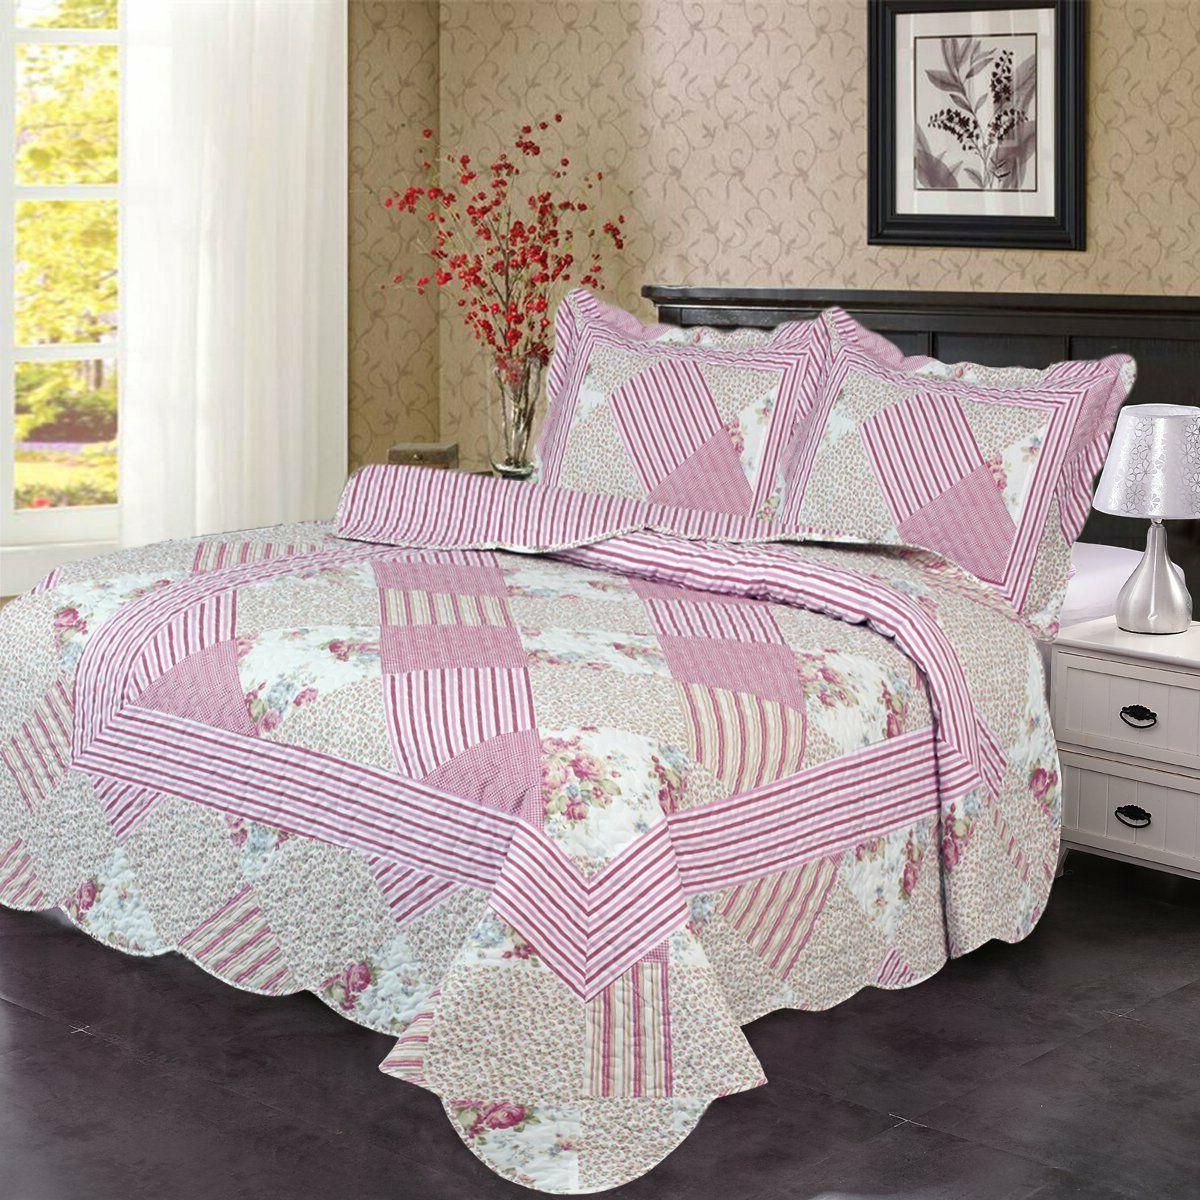 Set with Shams Bedspread Coverlet